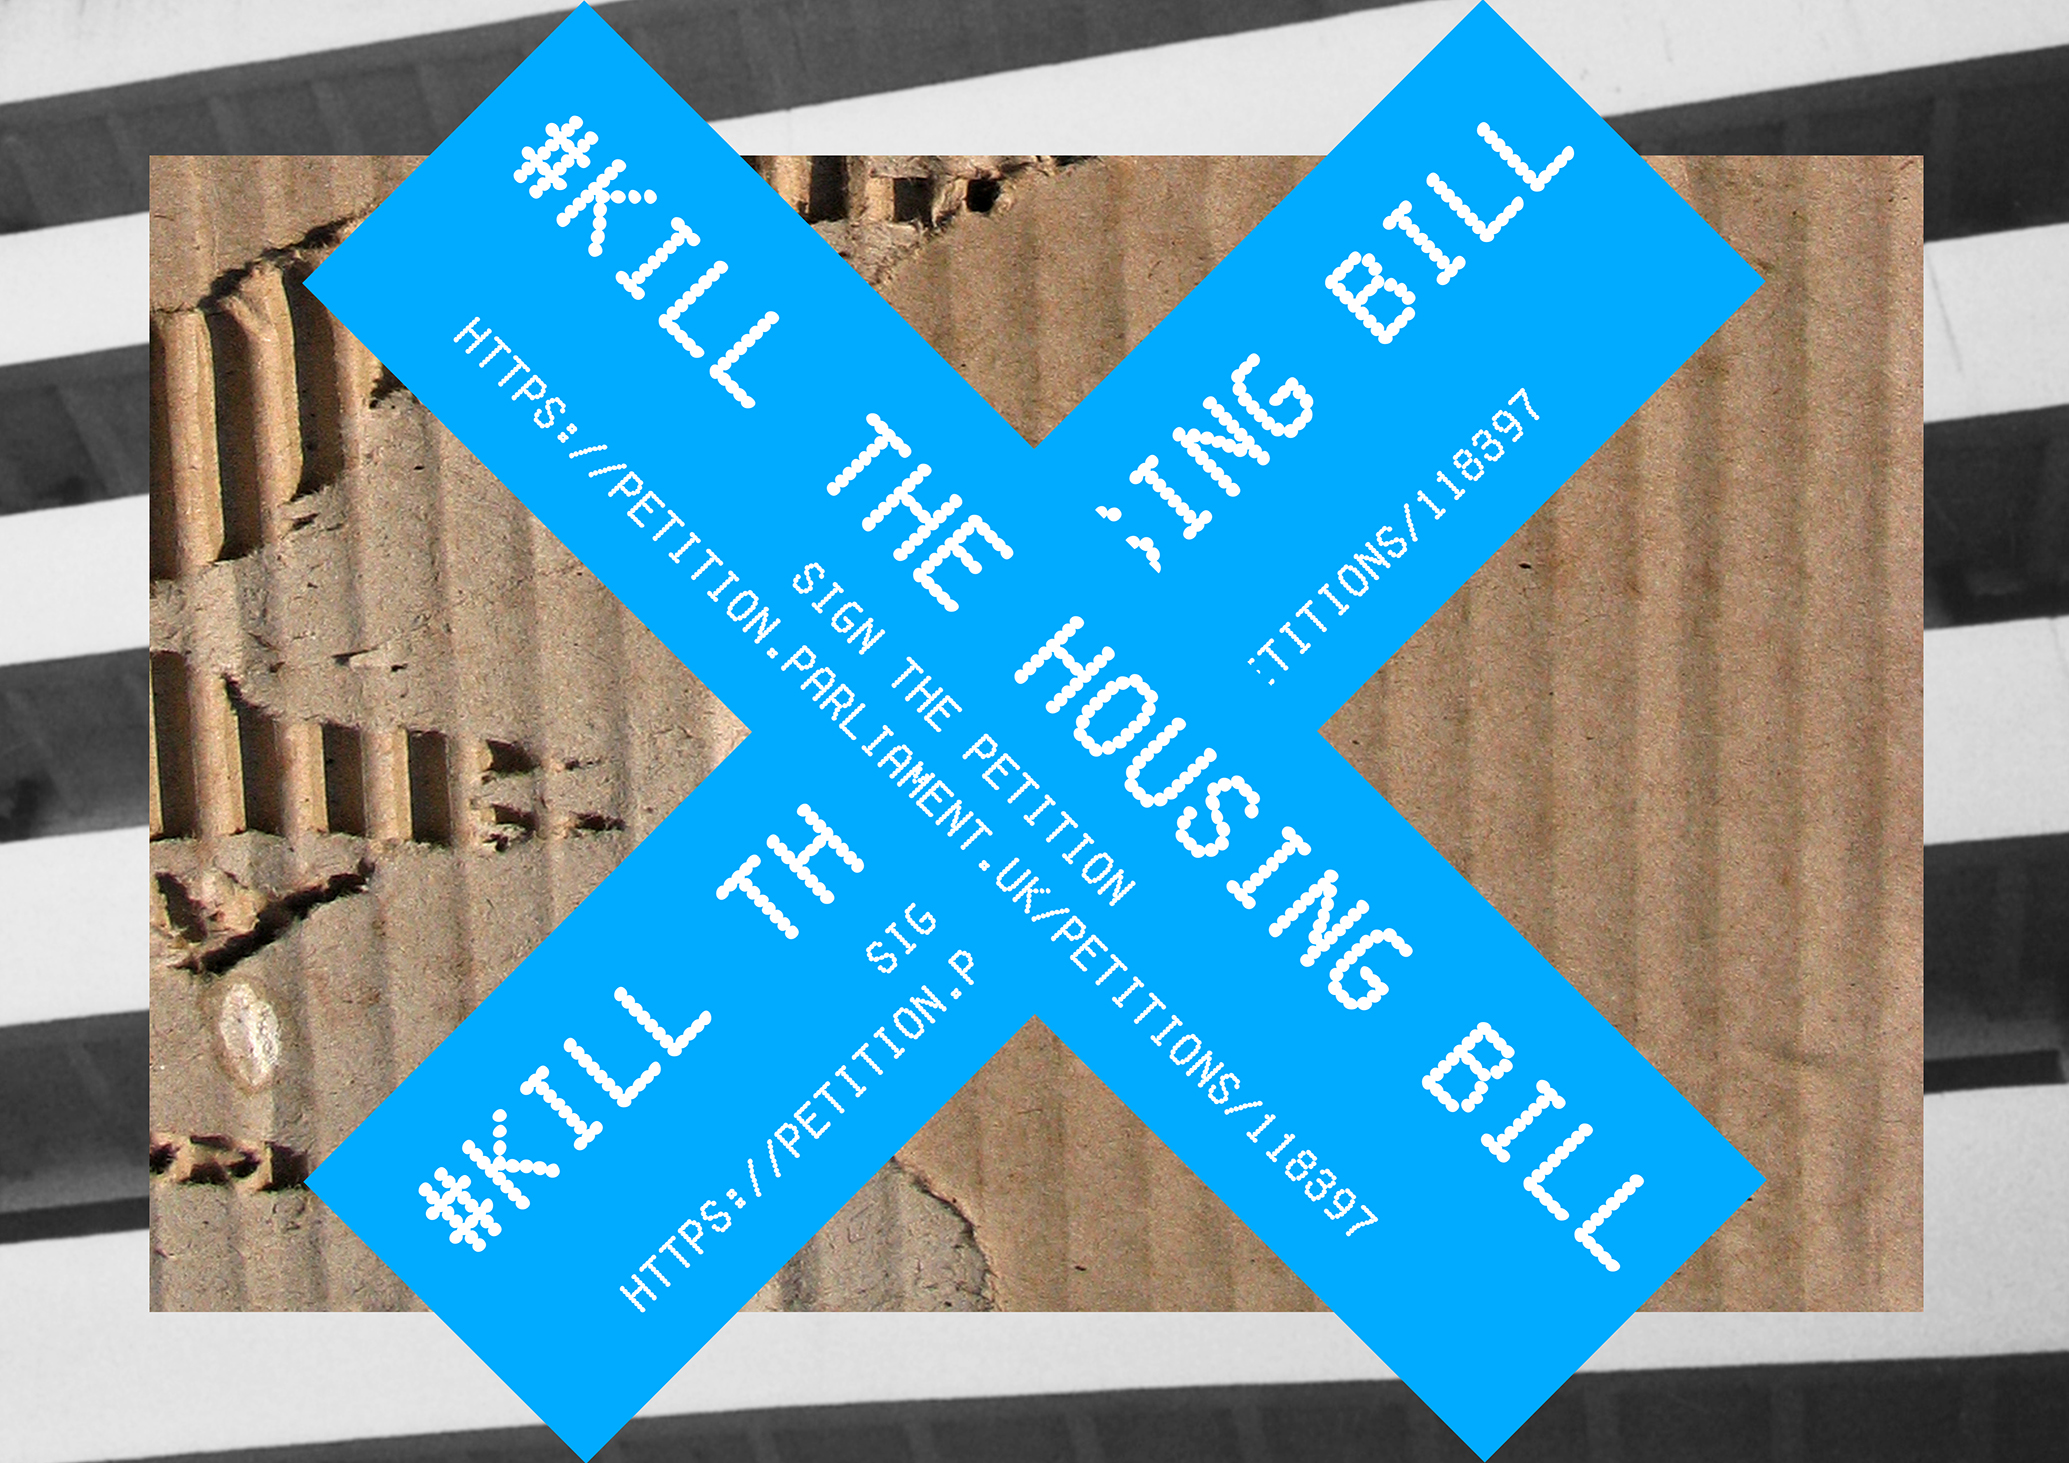 KILLTHEHOUSINGBILSNUFFCREATIVE2016-blue-LR.jpg